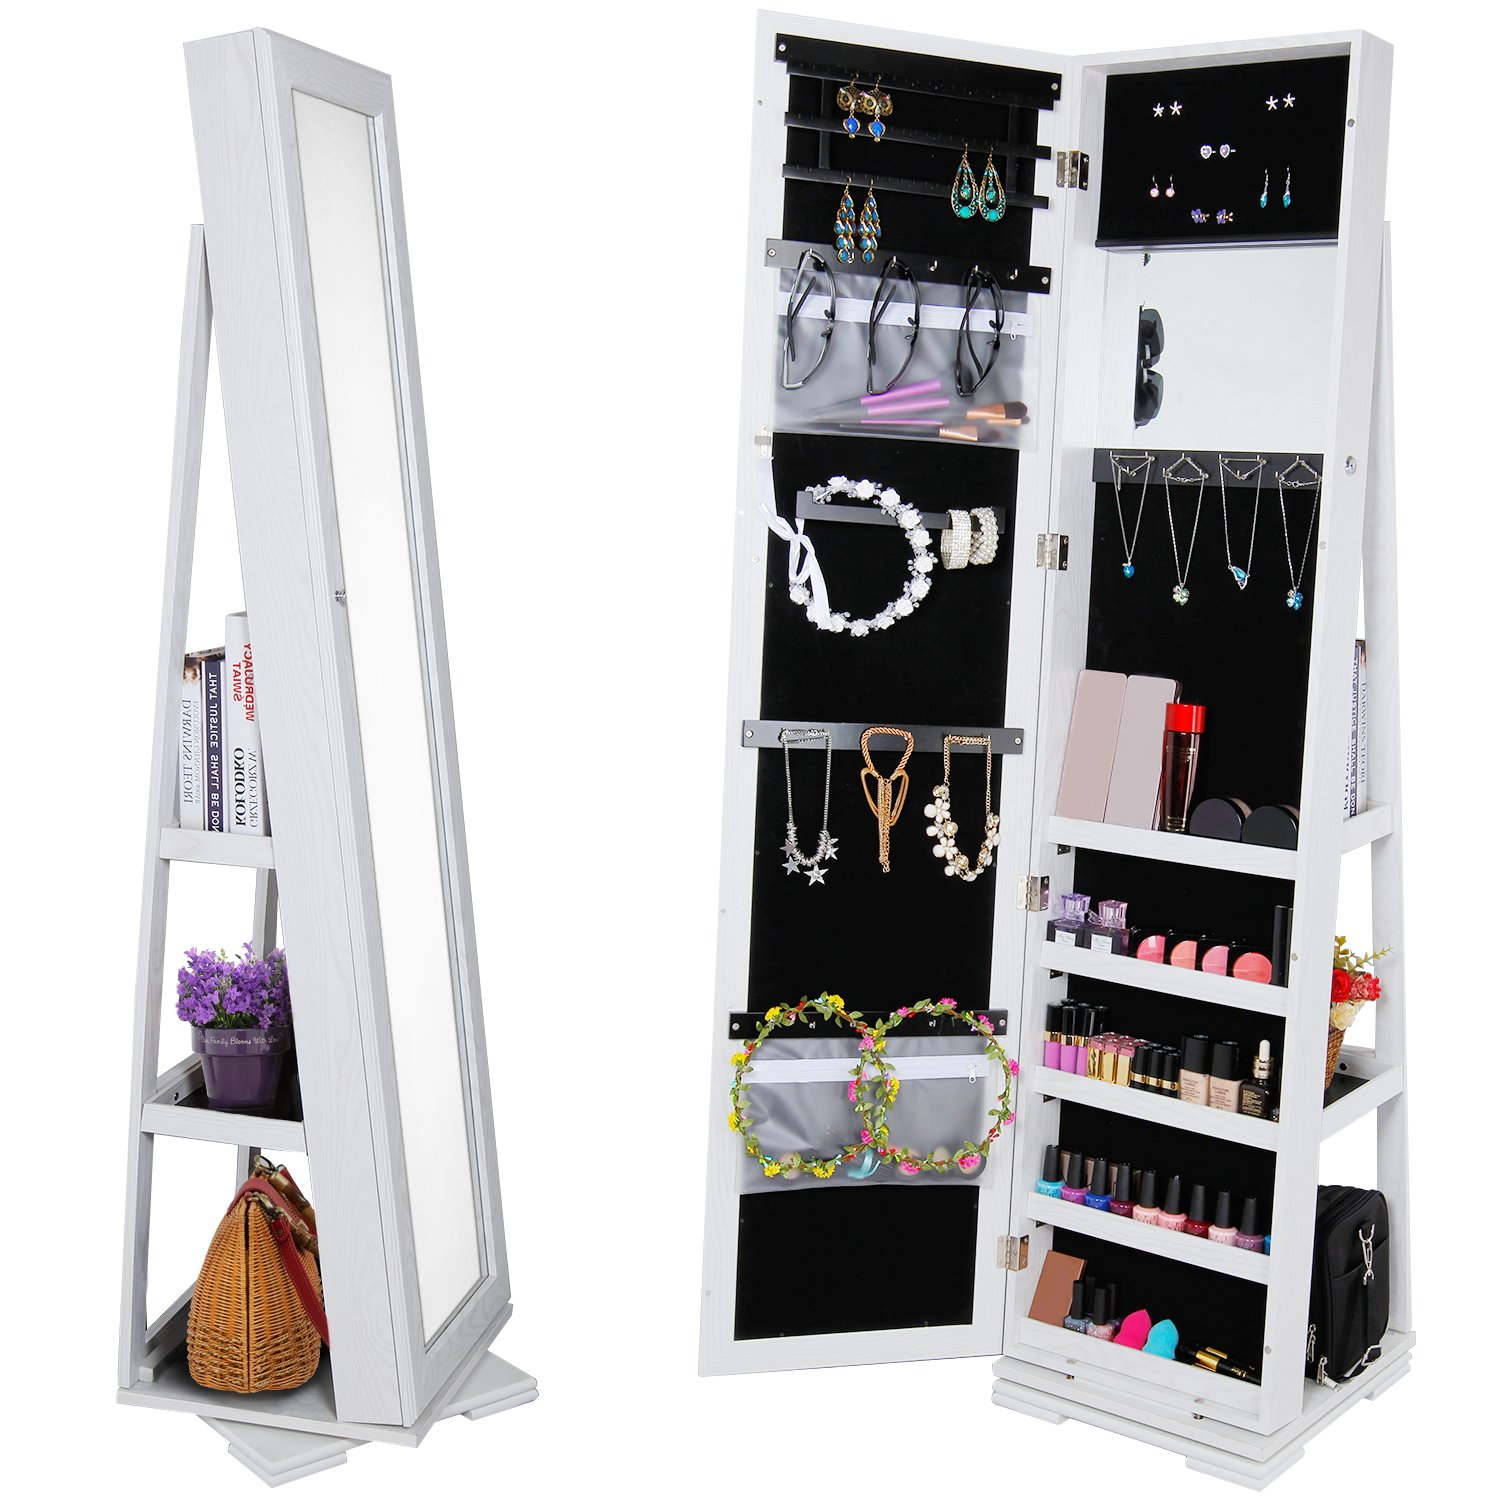 Lifewit Lockable Full Length Mirrored Jewelry Cabinet, Wall Door Mounted Bedroom Armoire, Makeup Organizer with LED Light (White-2)